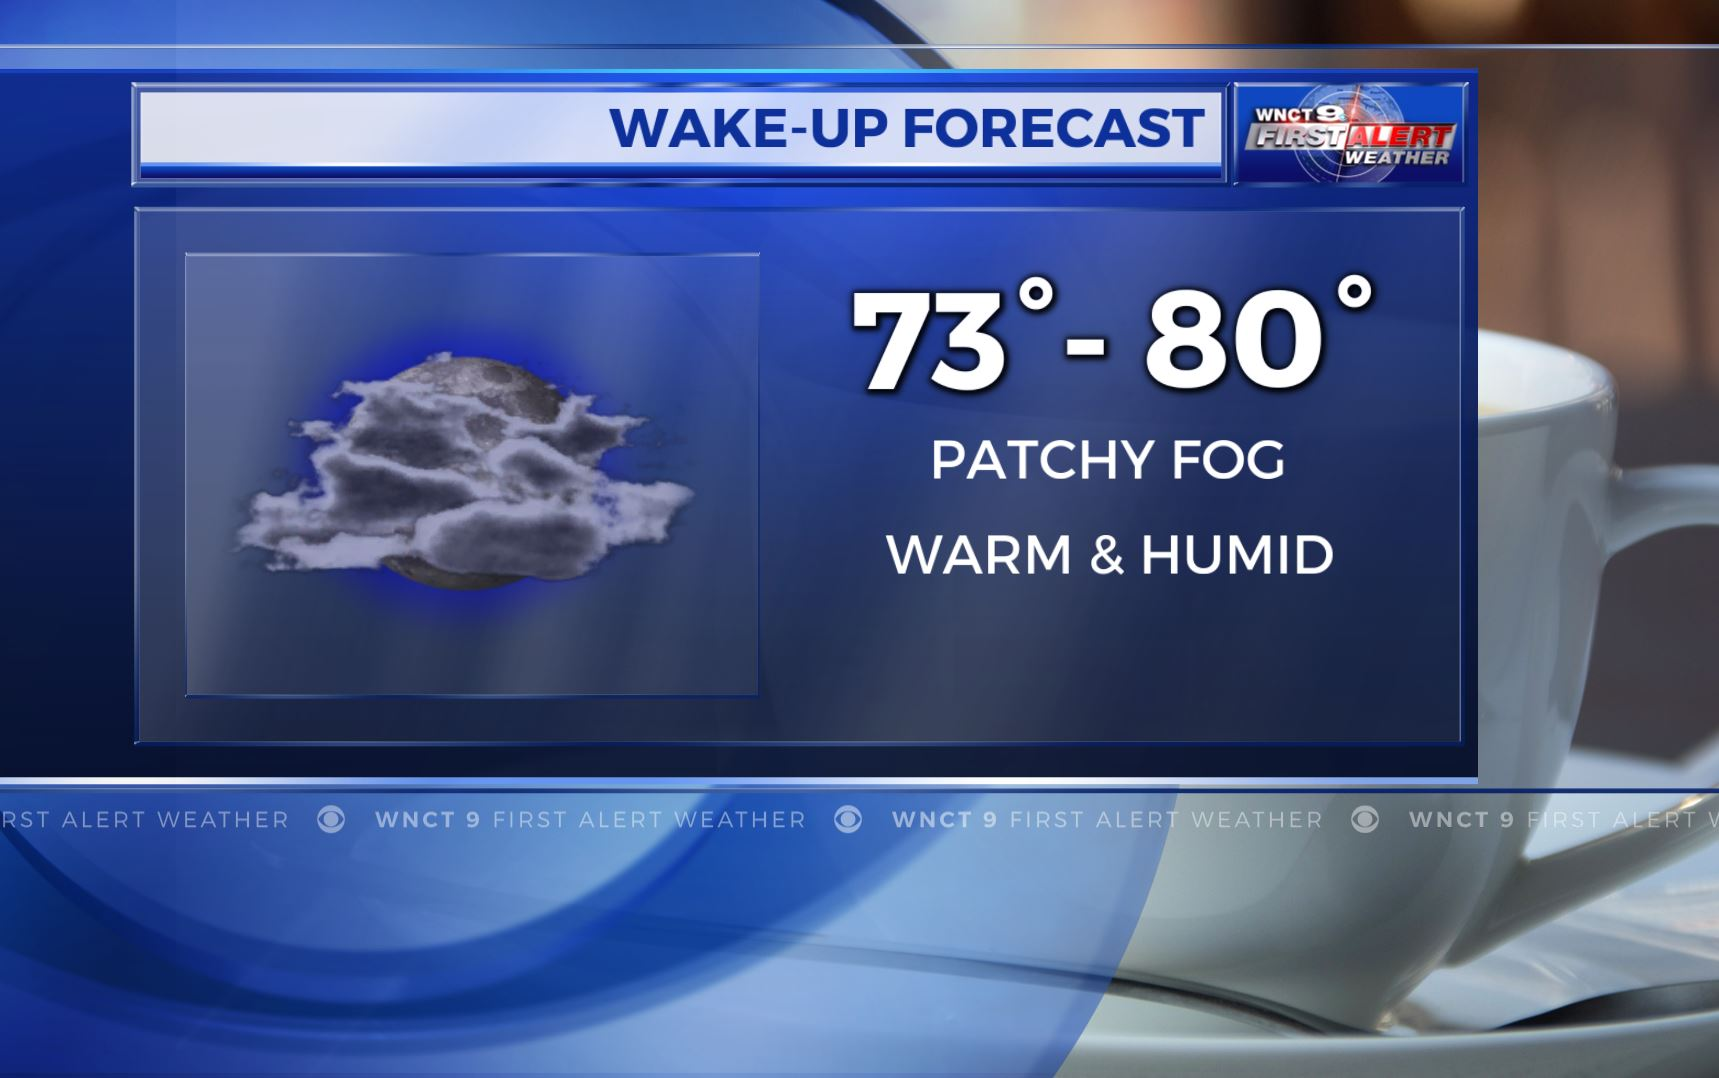 Wednesday weather: Sunny skies, with highs in the mid-80s